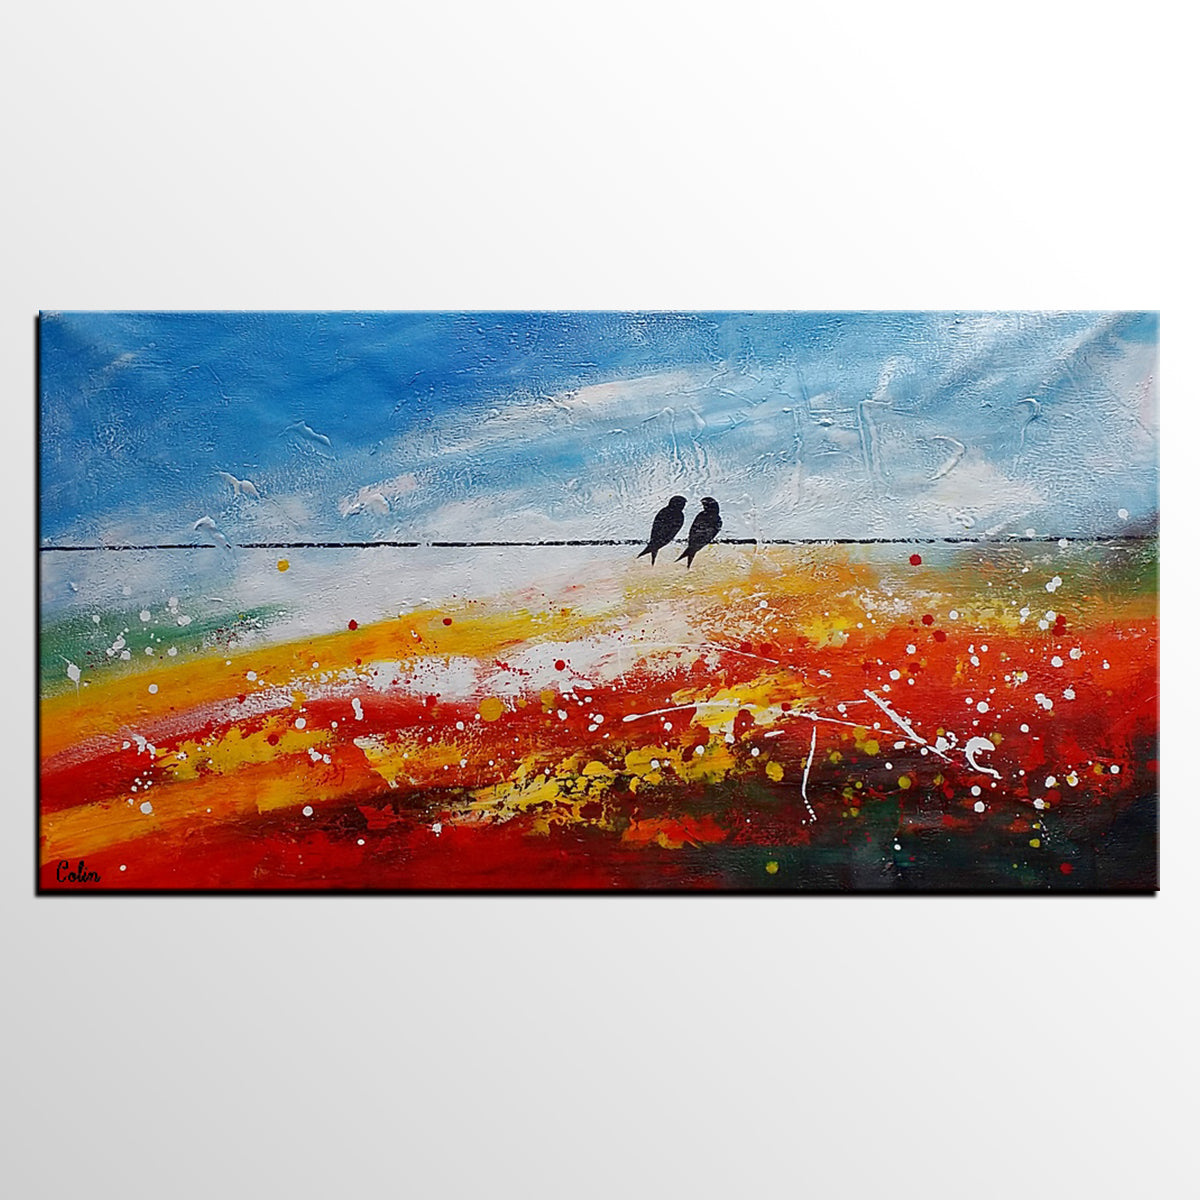 Canvas Art, Abstract Art, Love Birds Painting, Canvas Painting, Bedroom Wall Art - artworkcanvas